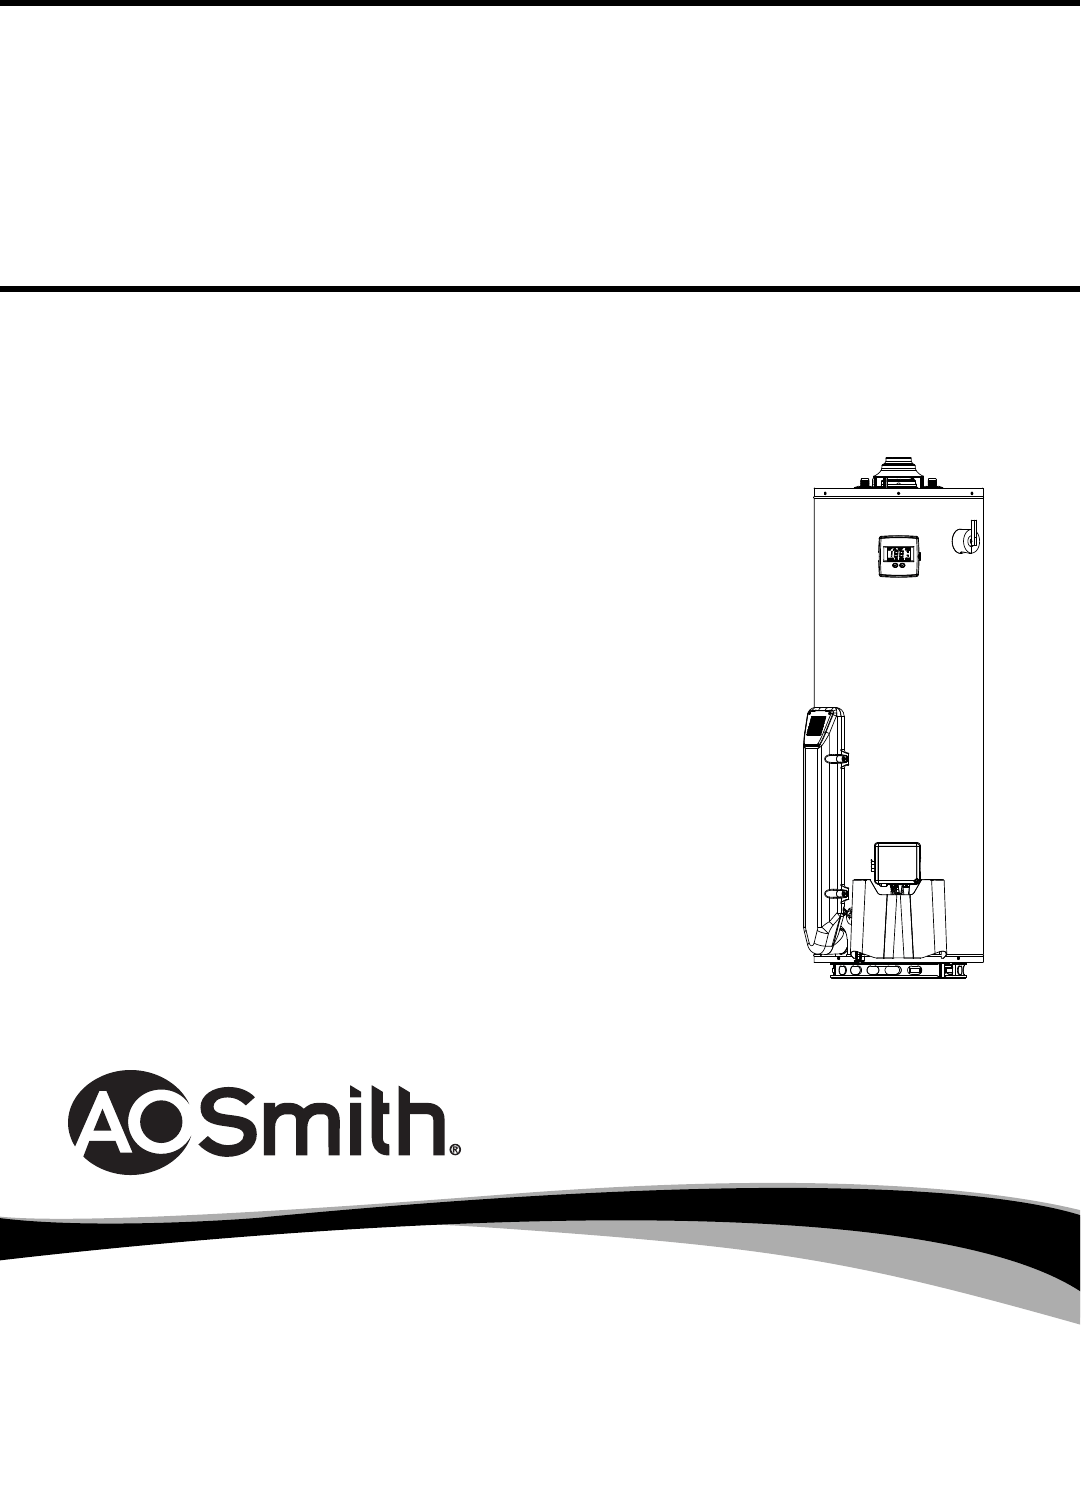 A.O. Smith Water Heater PCG2J5040T3NOV 100 User Guide